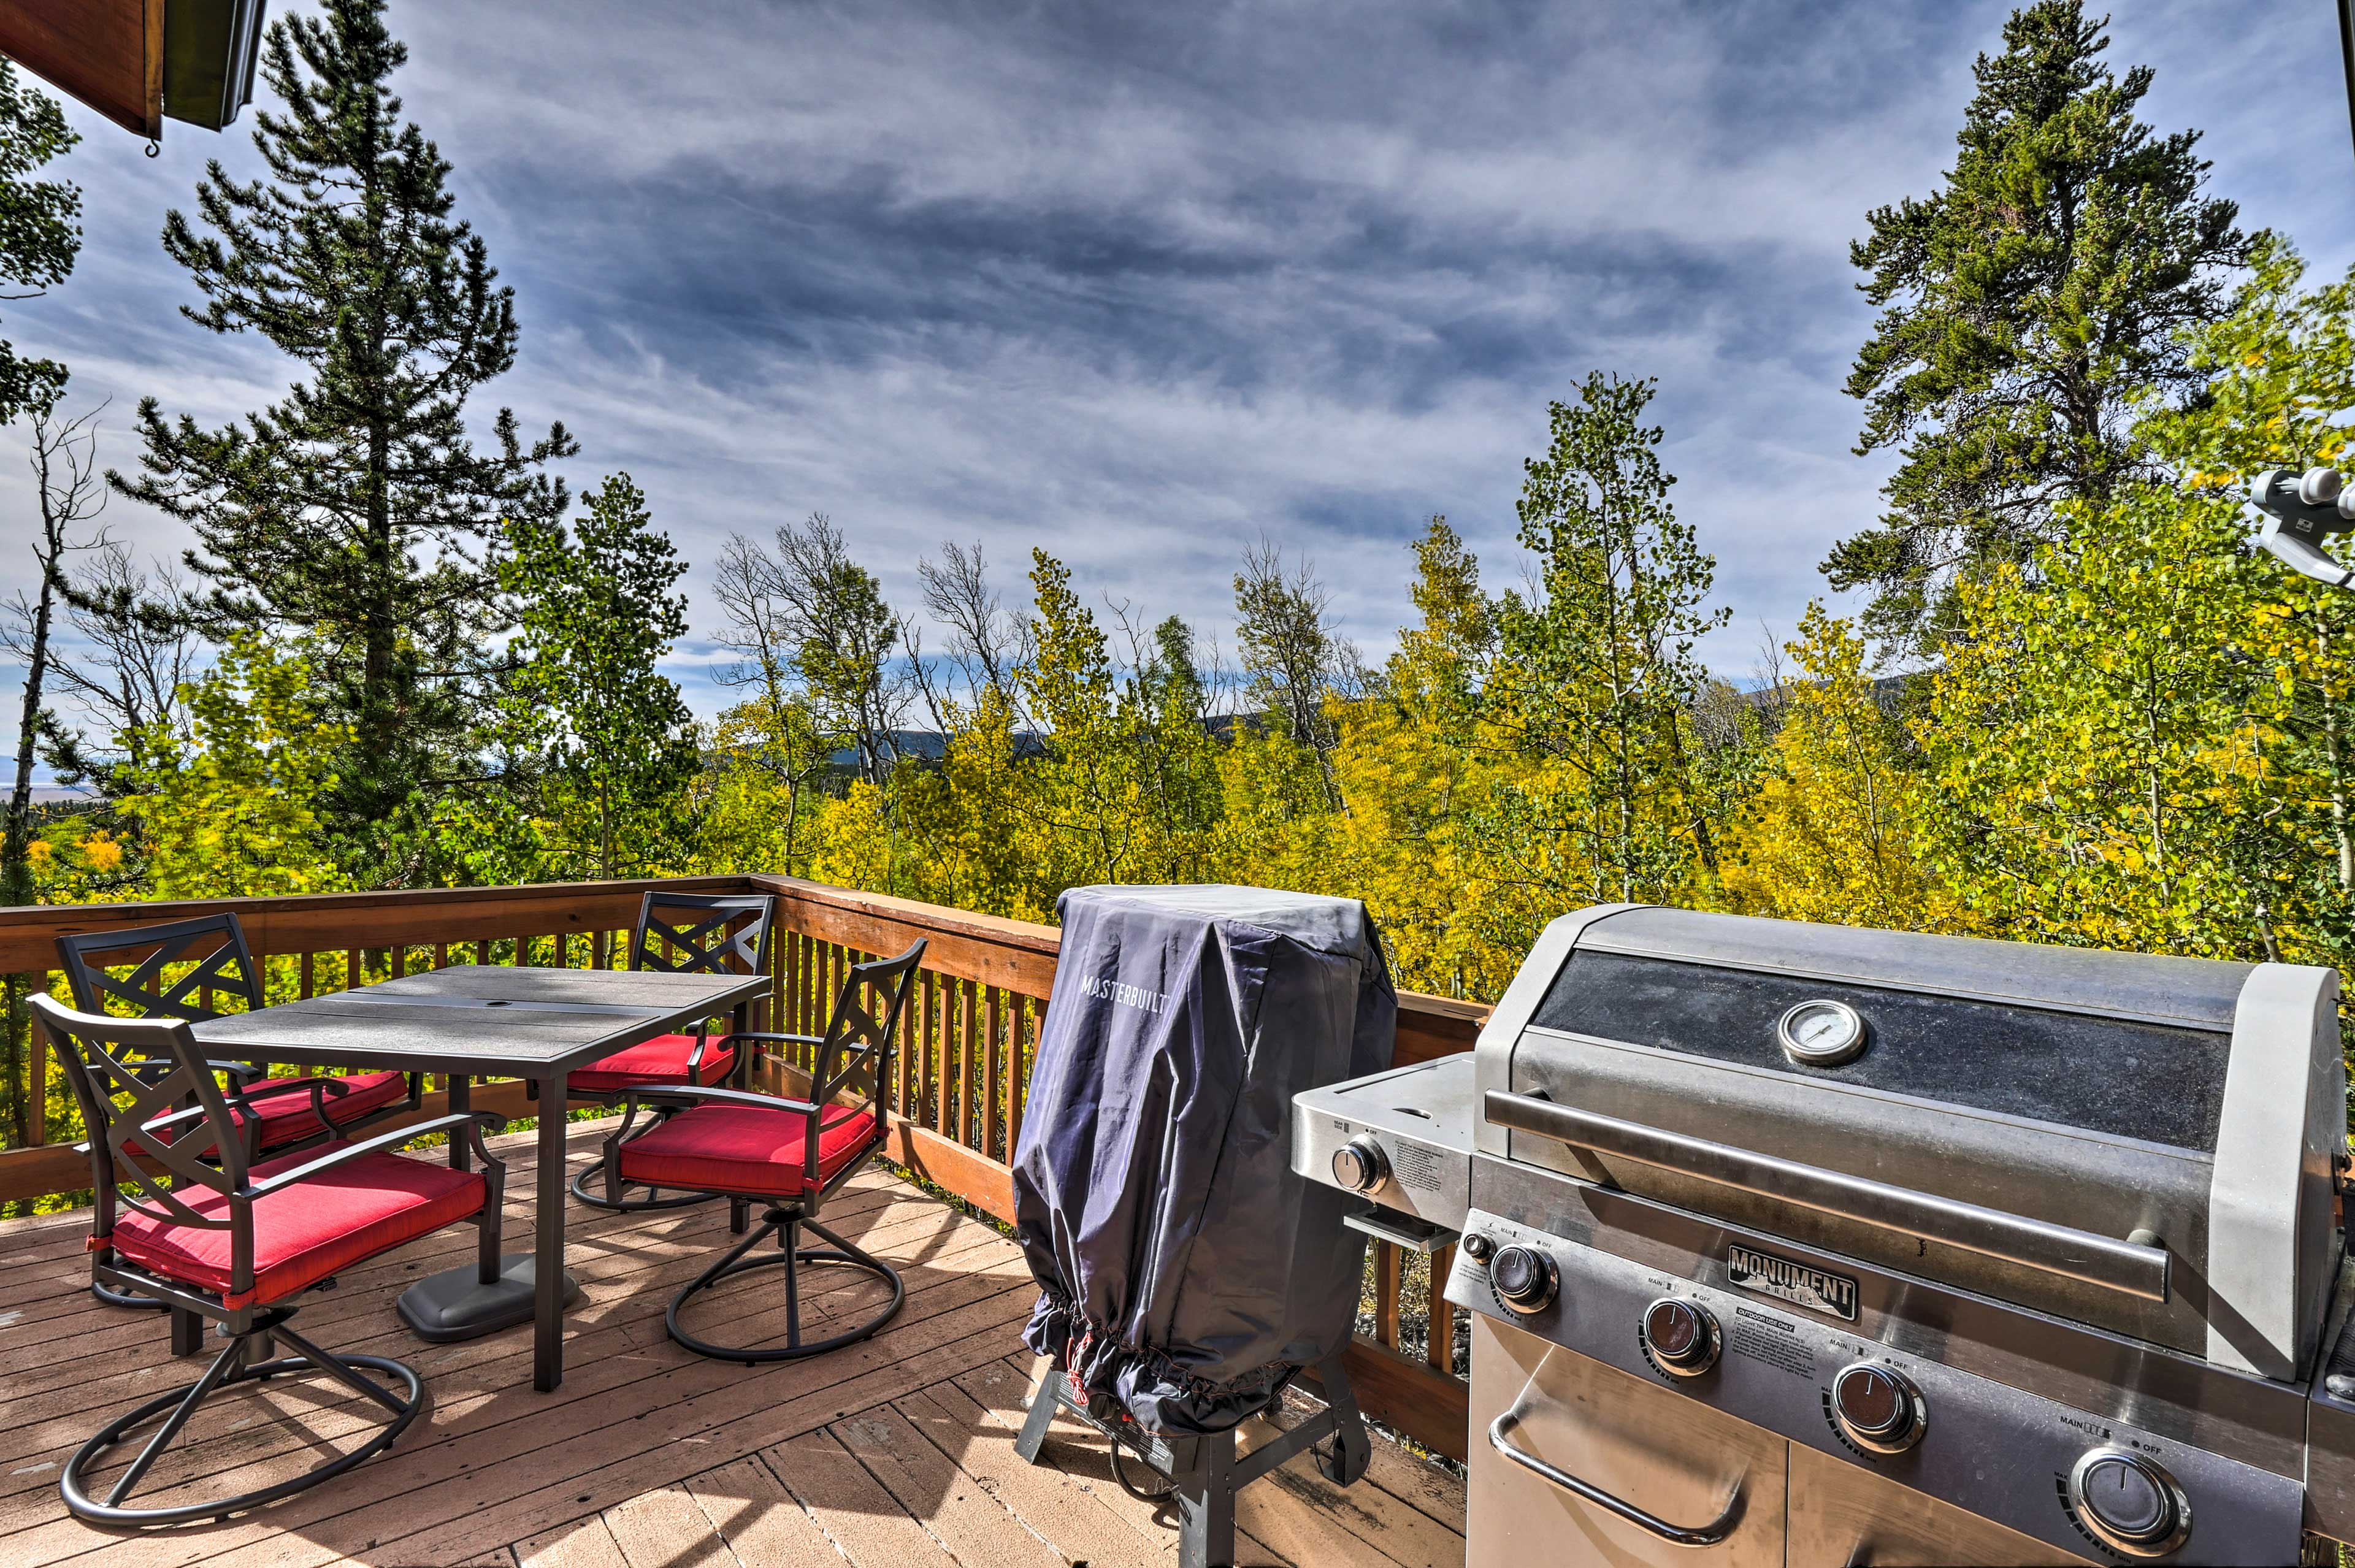 Fire up the gas grill and get to cooking!